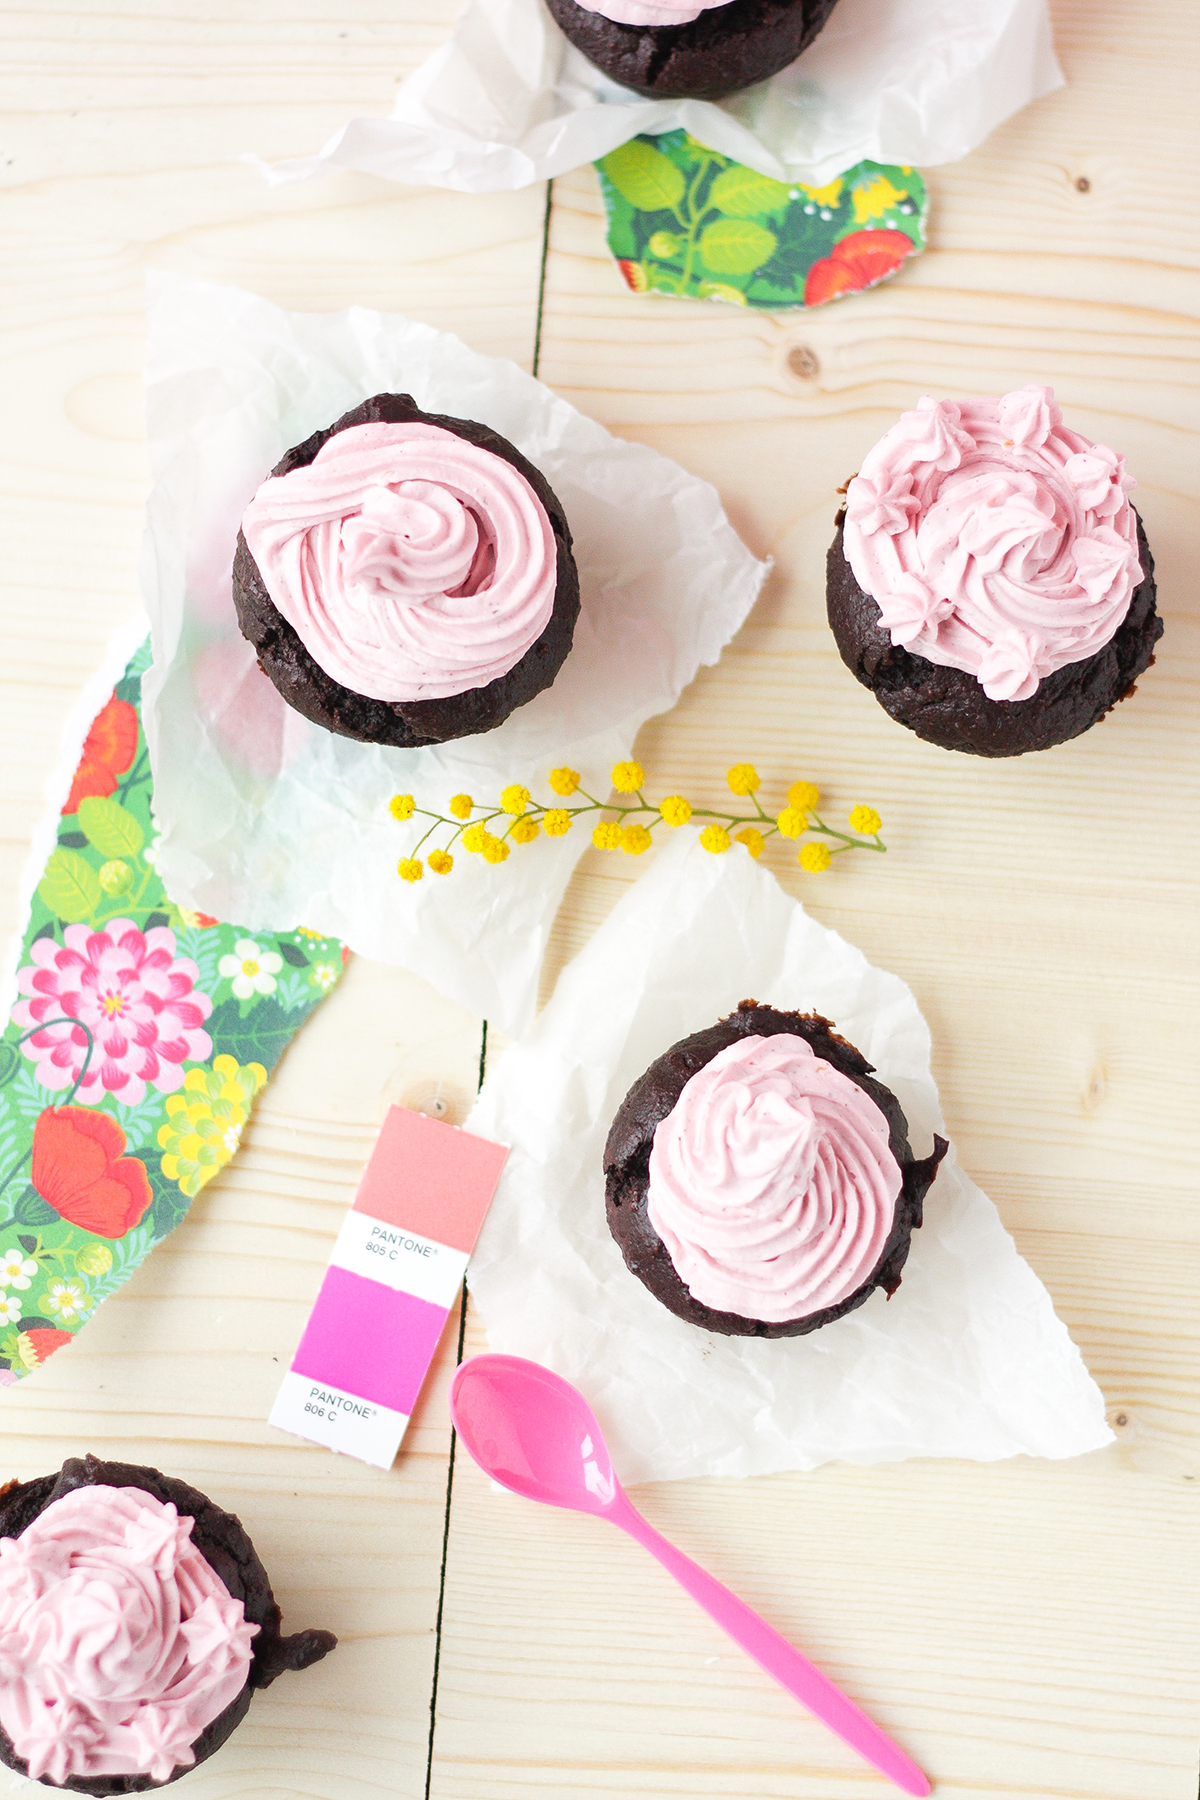 cupcakes-choco-betterave02